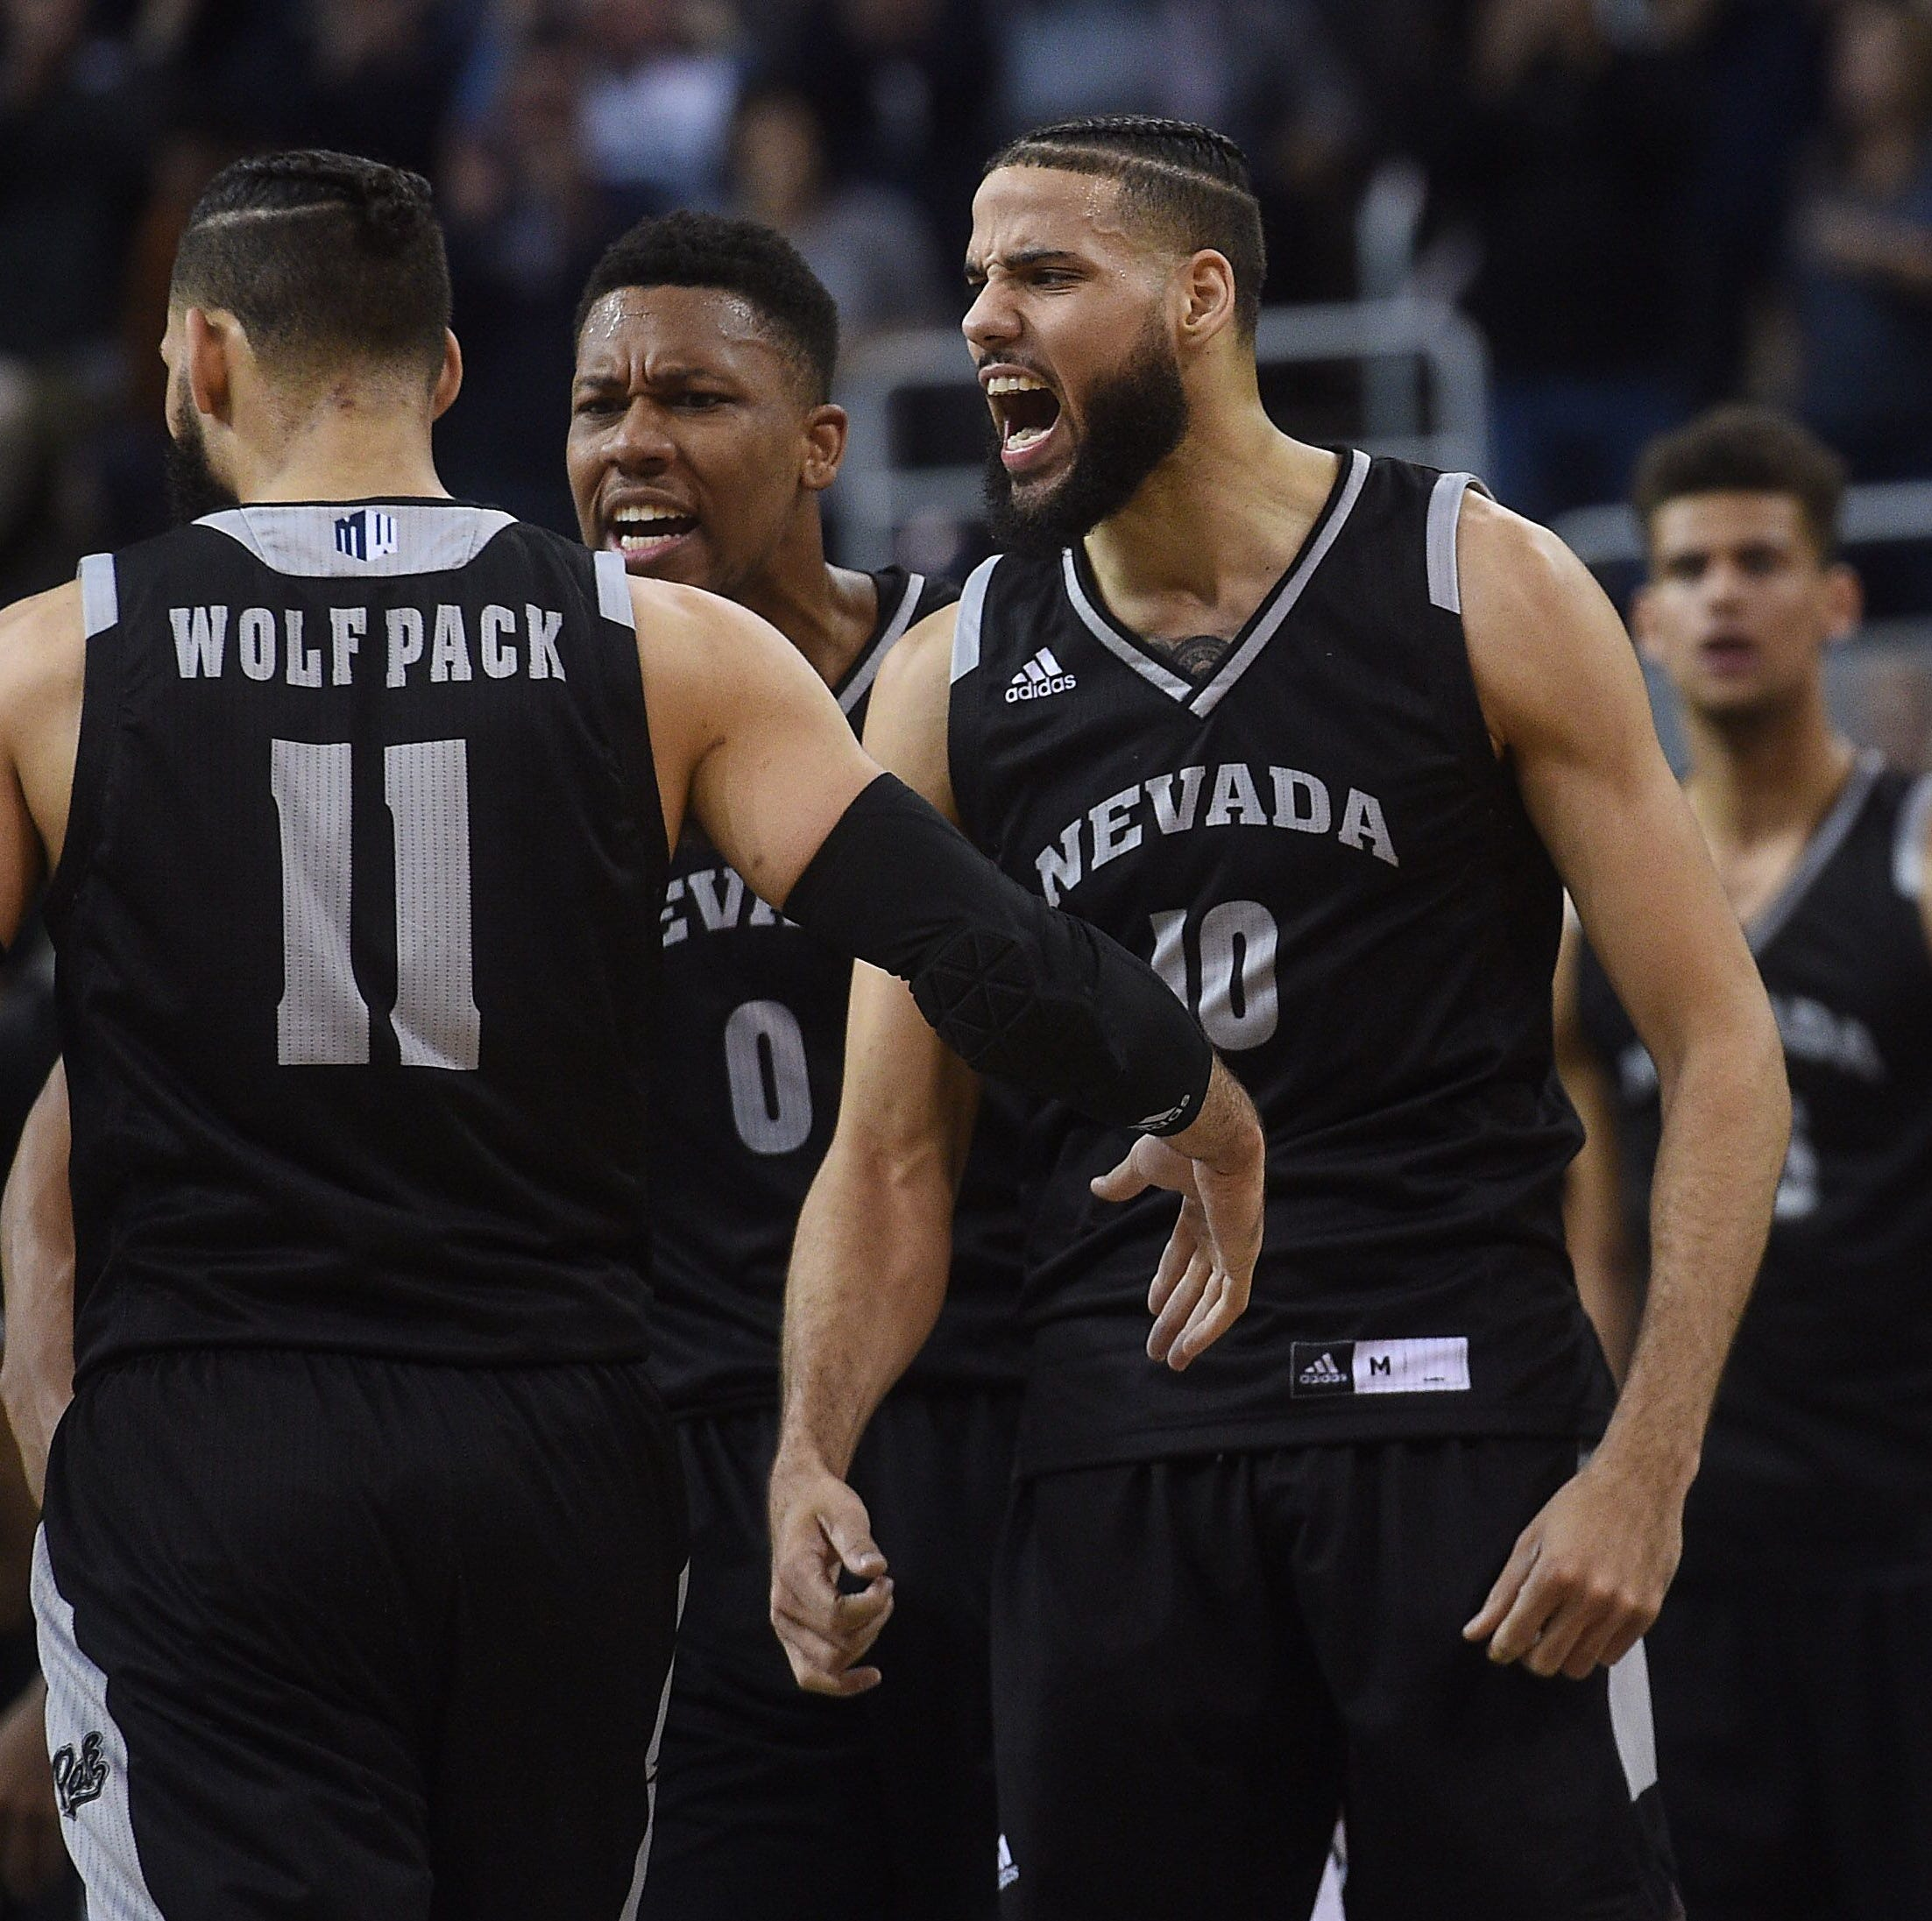 NCAA Tournament: Nevada Wolf Pack vs. Florida Gators watch parties, specials on Thursday